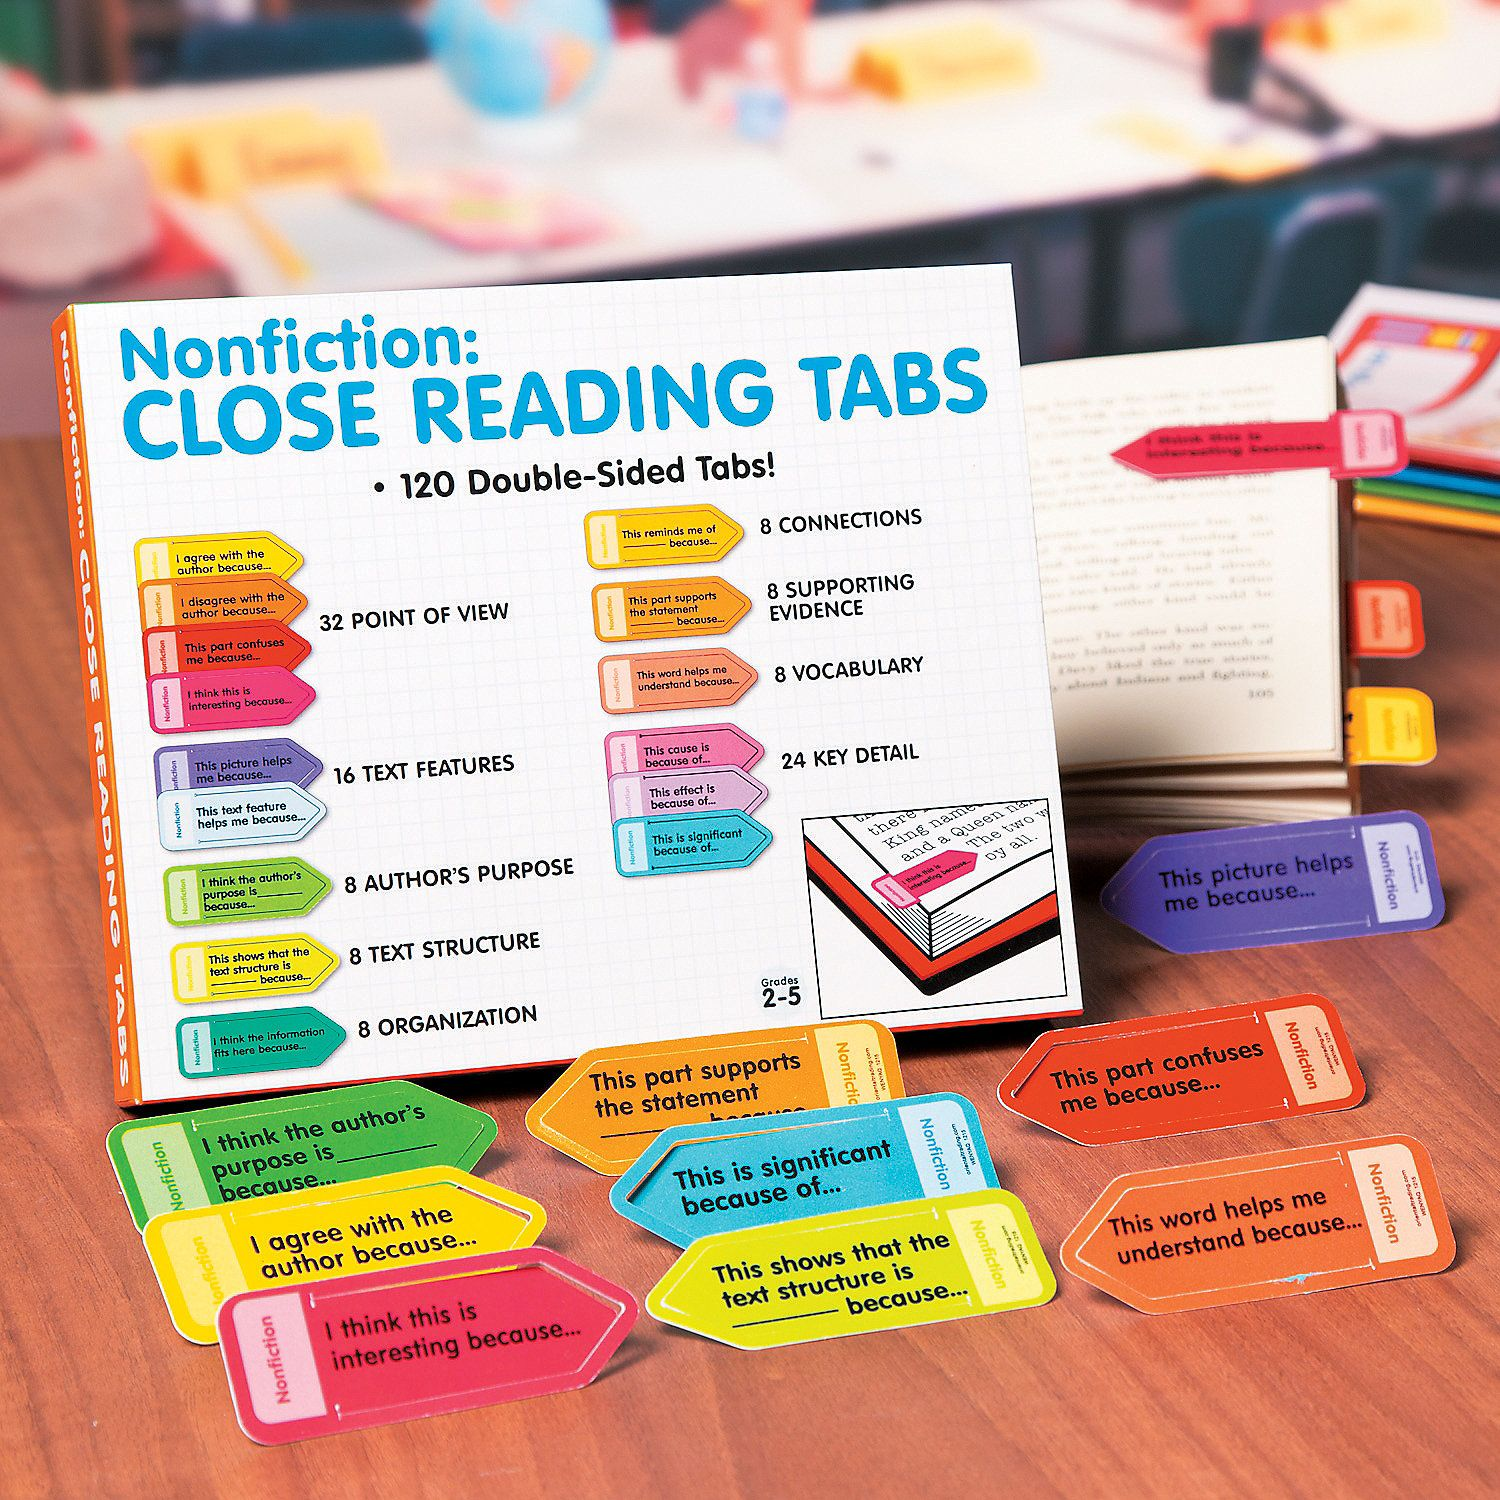 Nonfiction Close Reading Tabs Orientaltrading